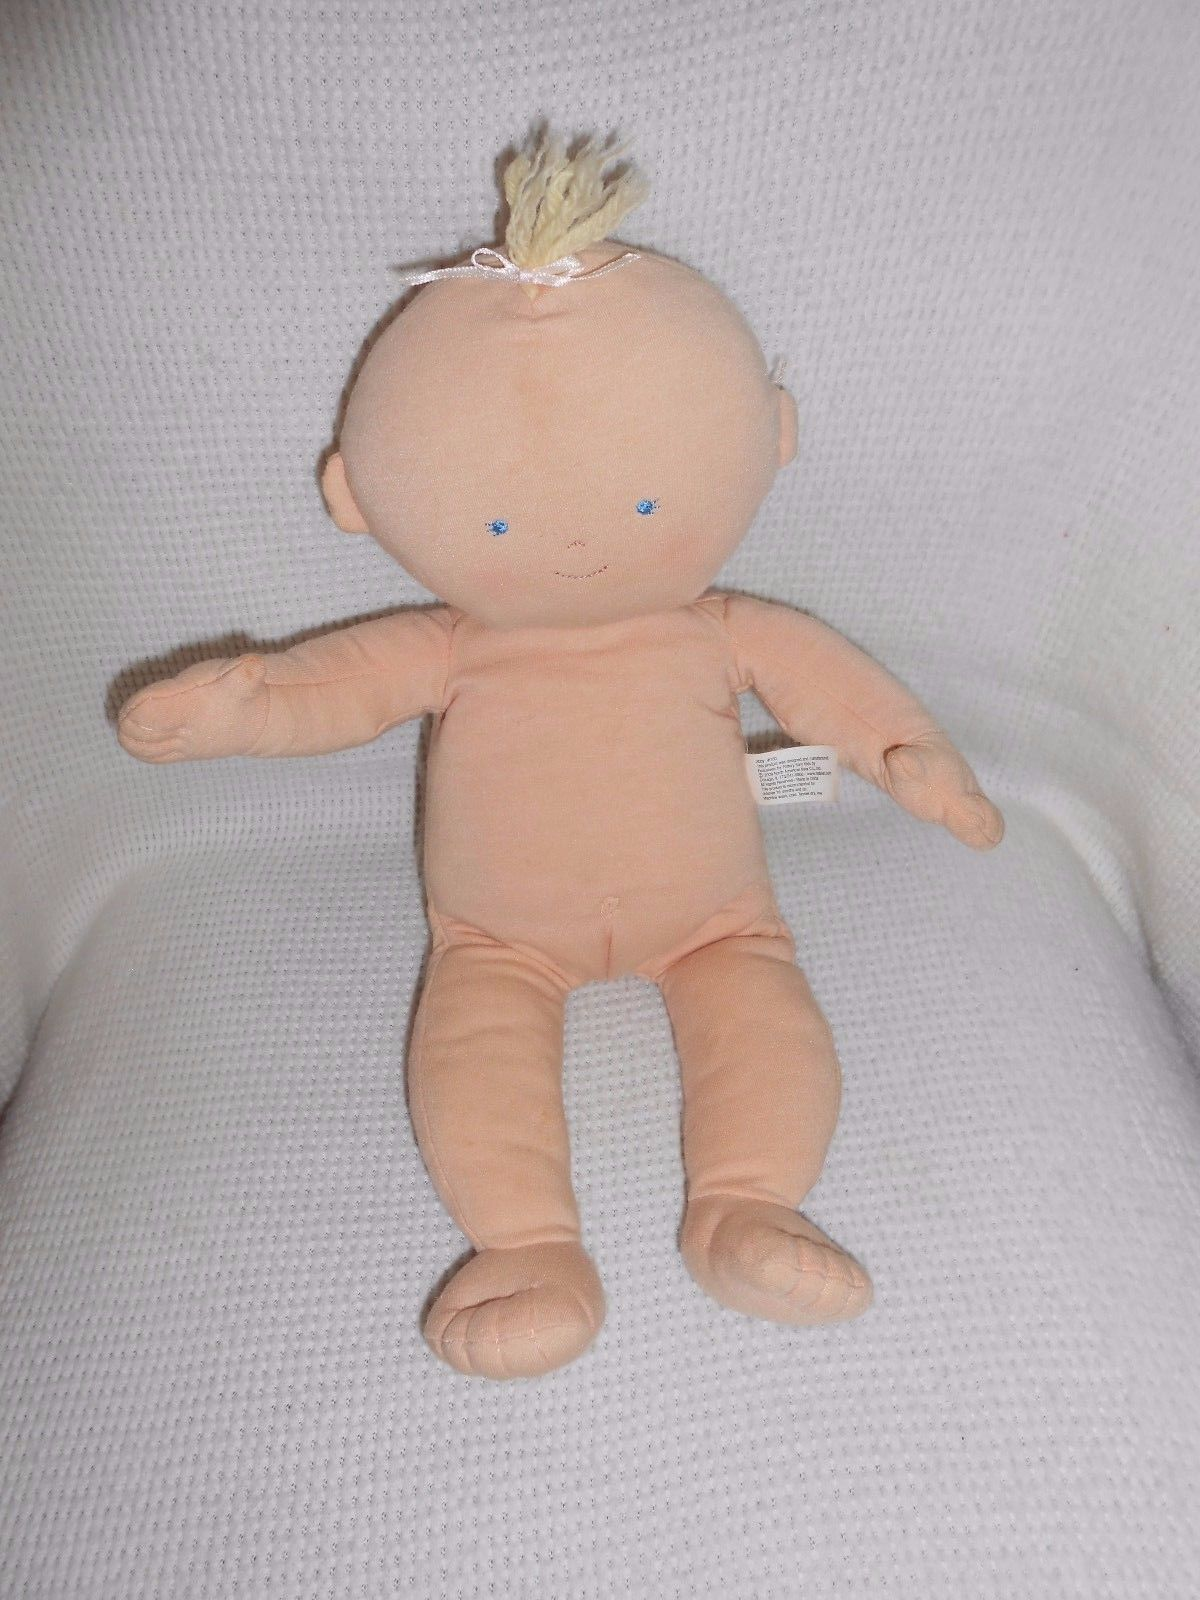 Pottery Barn Plush Doll 12 listings